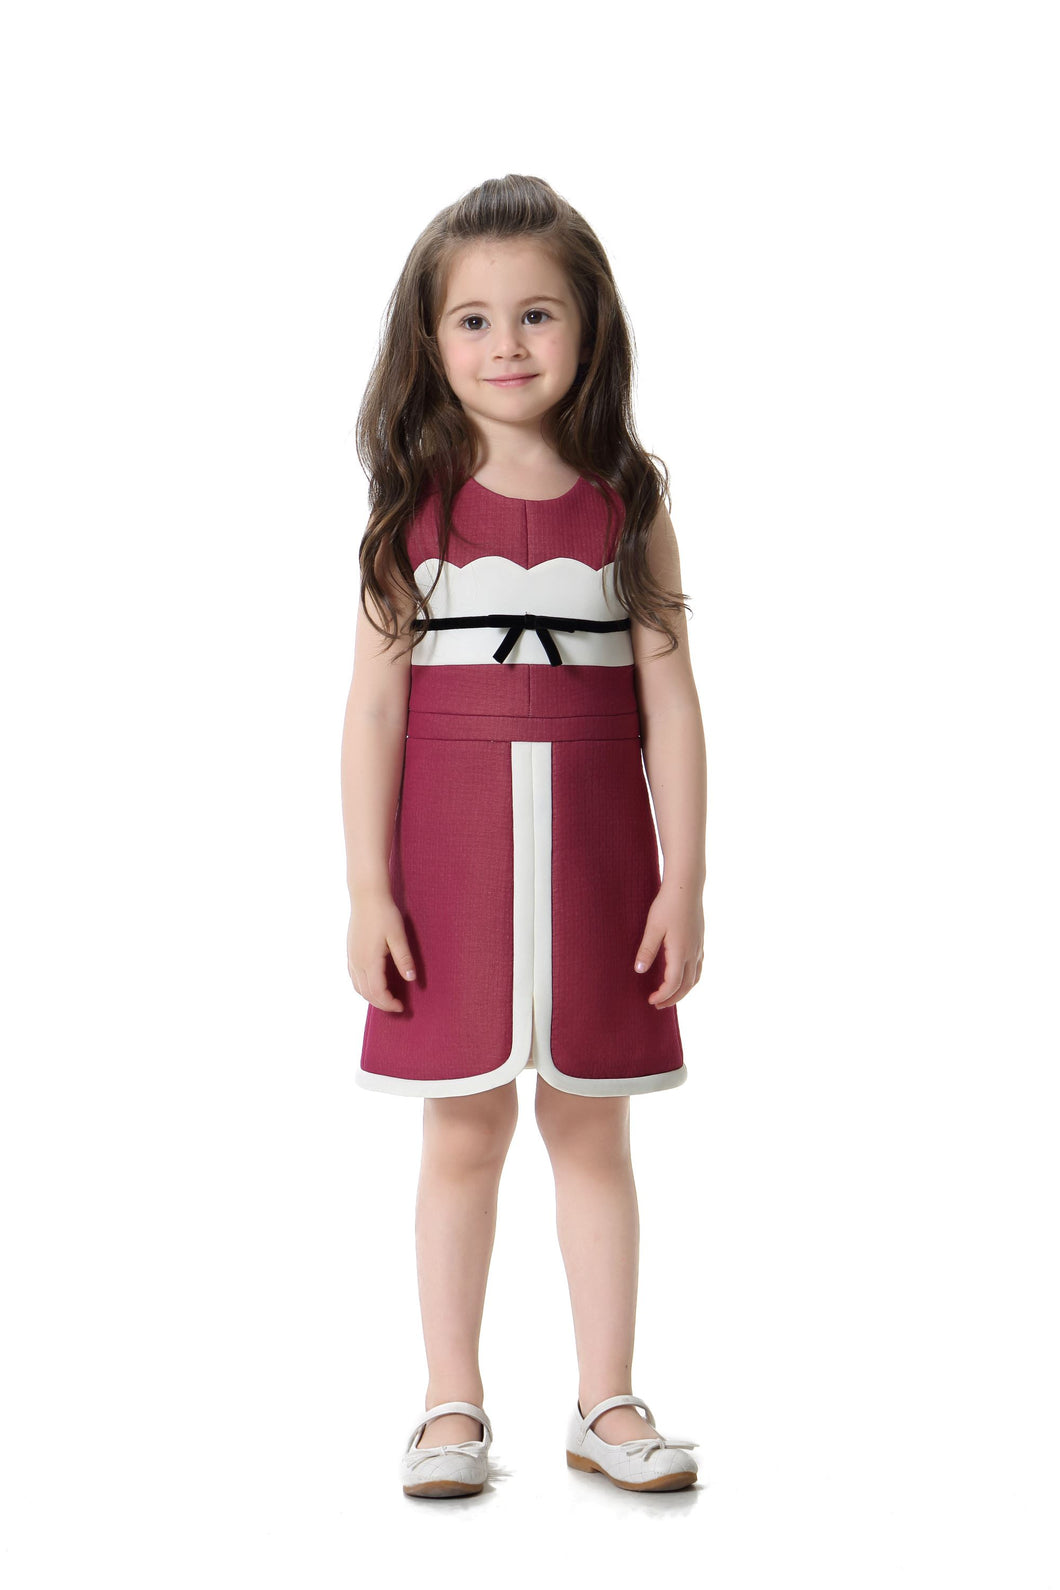 Little Miss Comino Pink Passion Dress